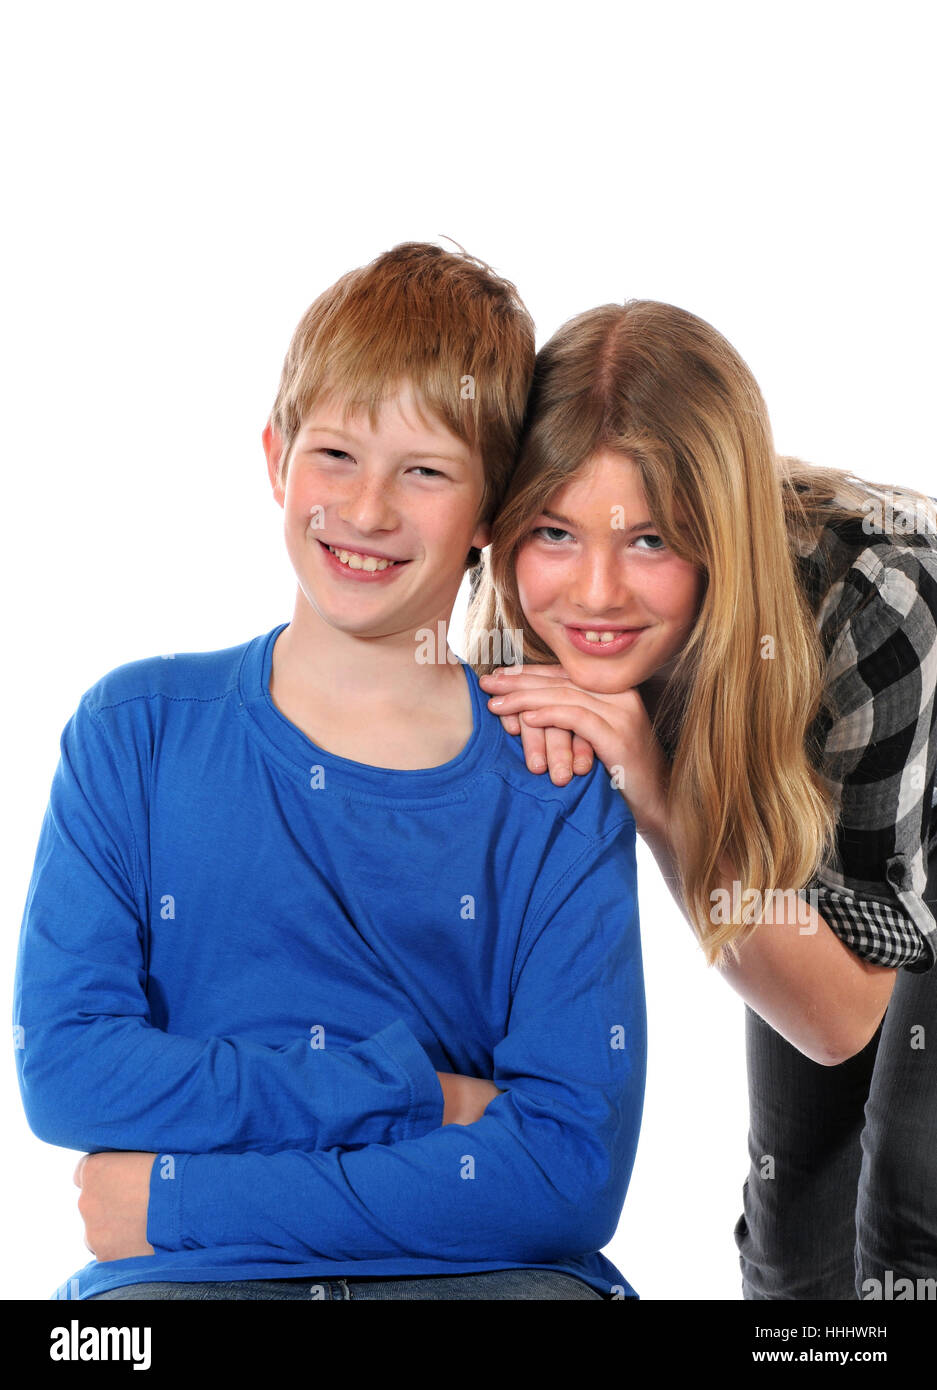 youngster girls Stock Photo - teenager, boy, lad, male youngster, young, younger, girl,  girls, child